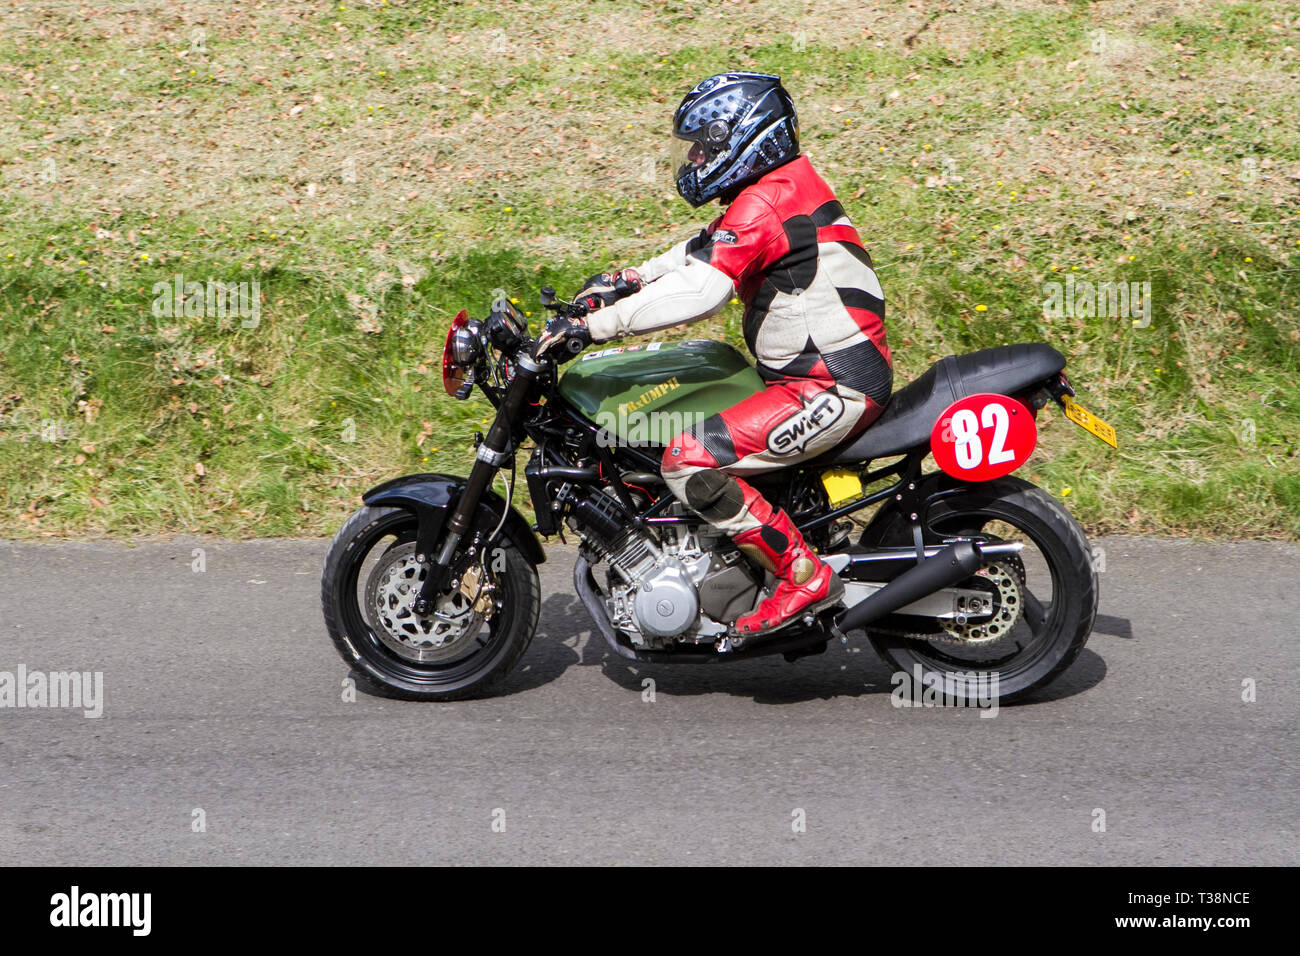 Chorley, Lancashire, UK. April, 2019. Hoghton Tower 43rd Motorcycle Sprint event. Rider - Stock Image